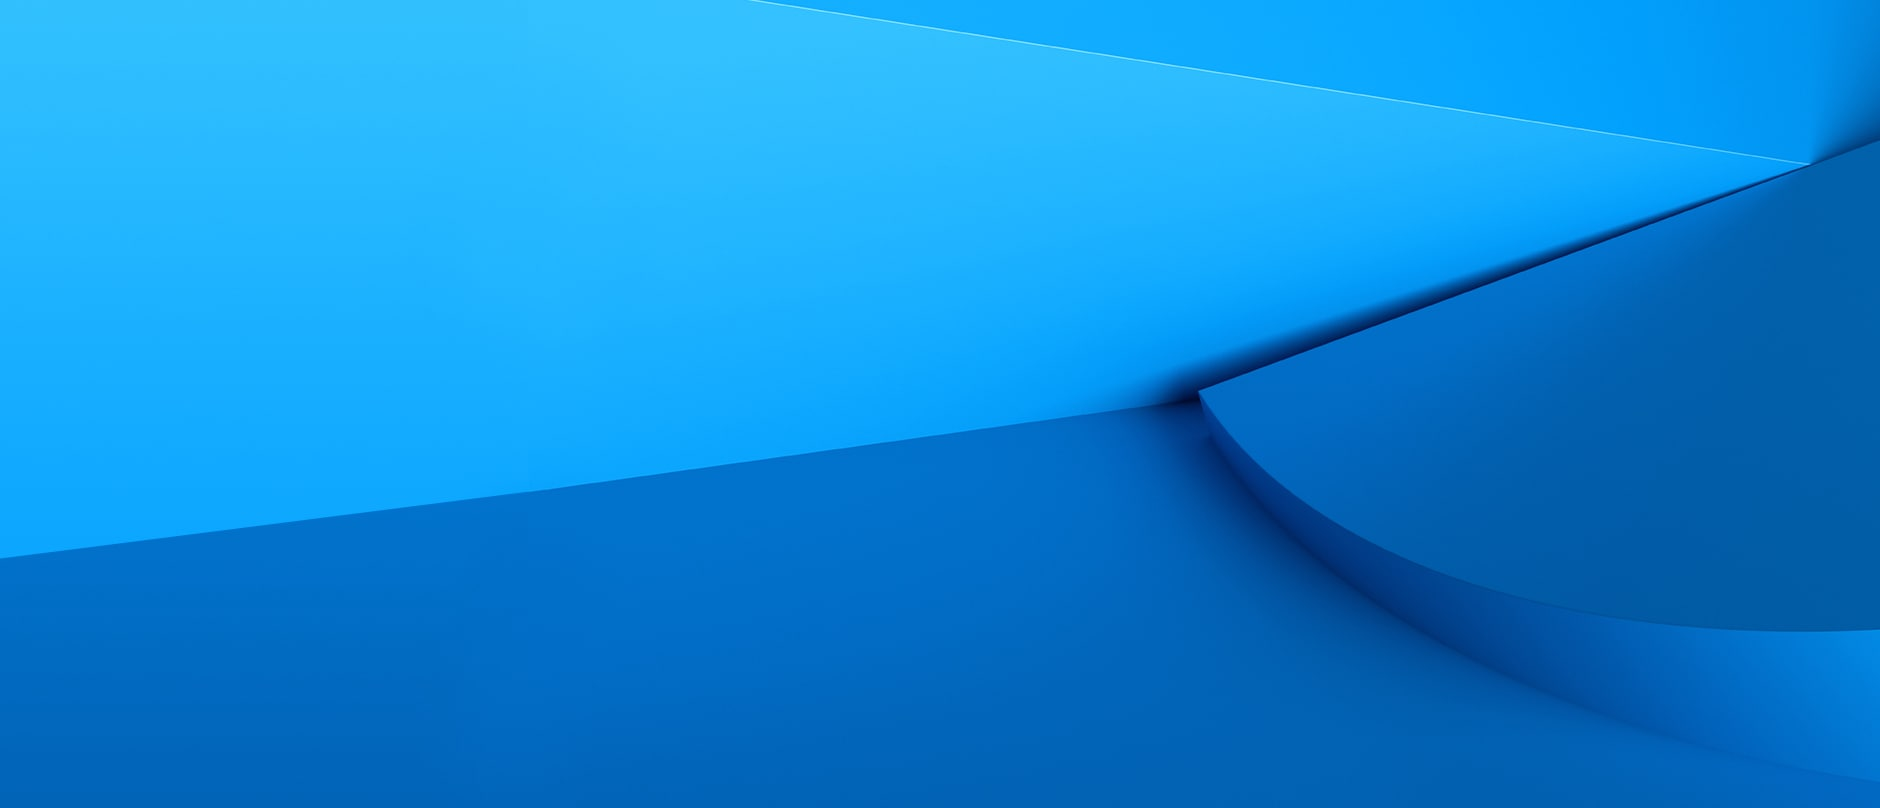 blue slope with a raised lip on two tone background